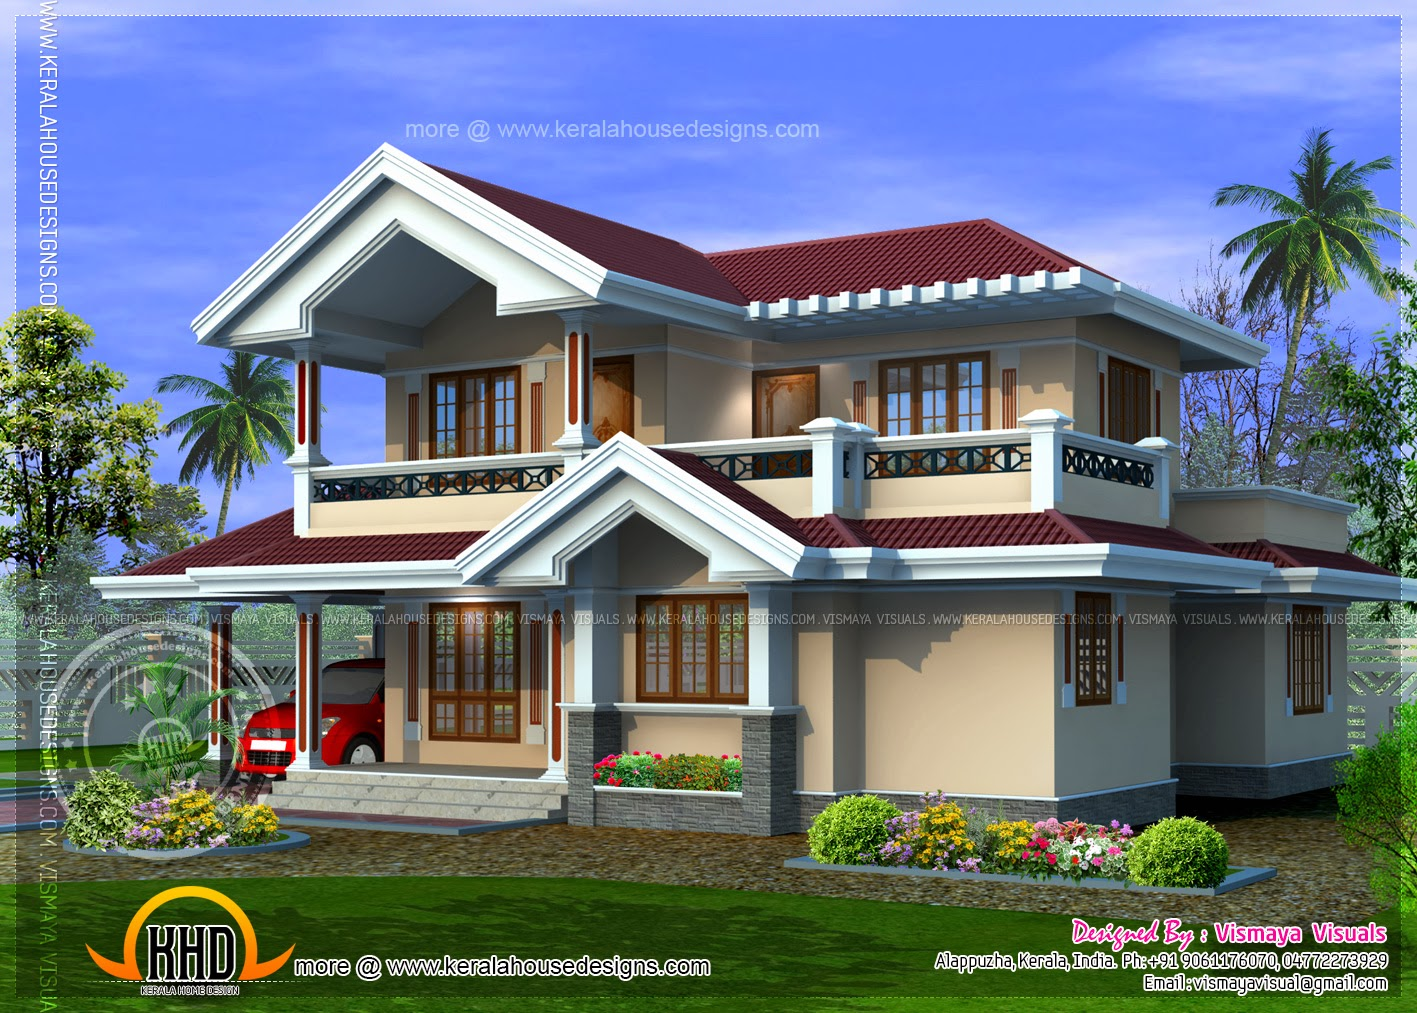 Kerala style villa plan in 1850 square feet kerala home for Kerala style villa plans